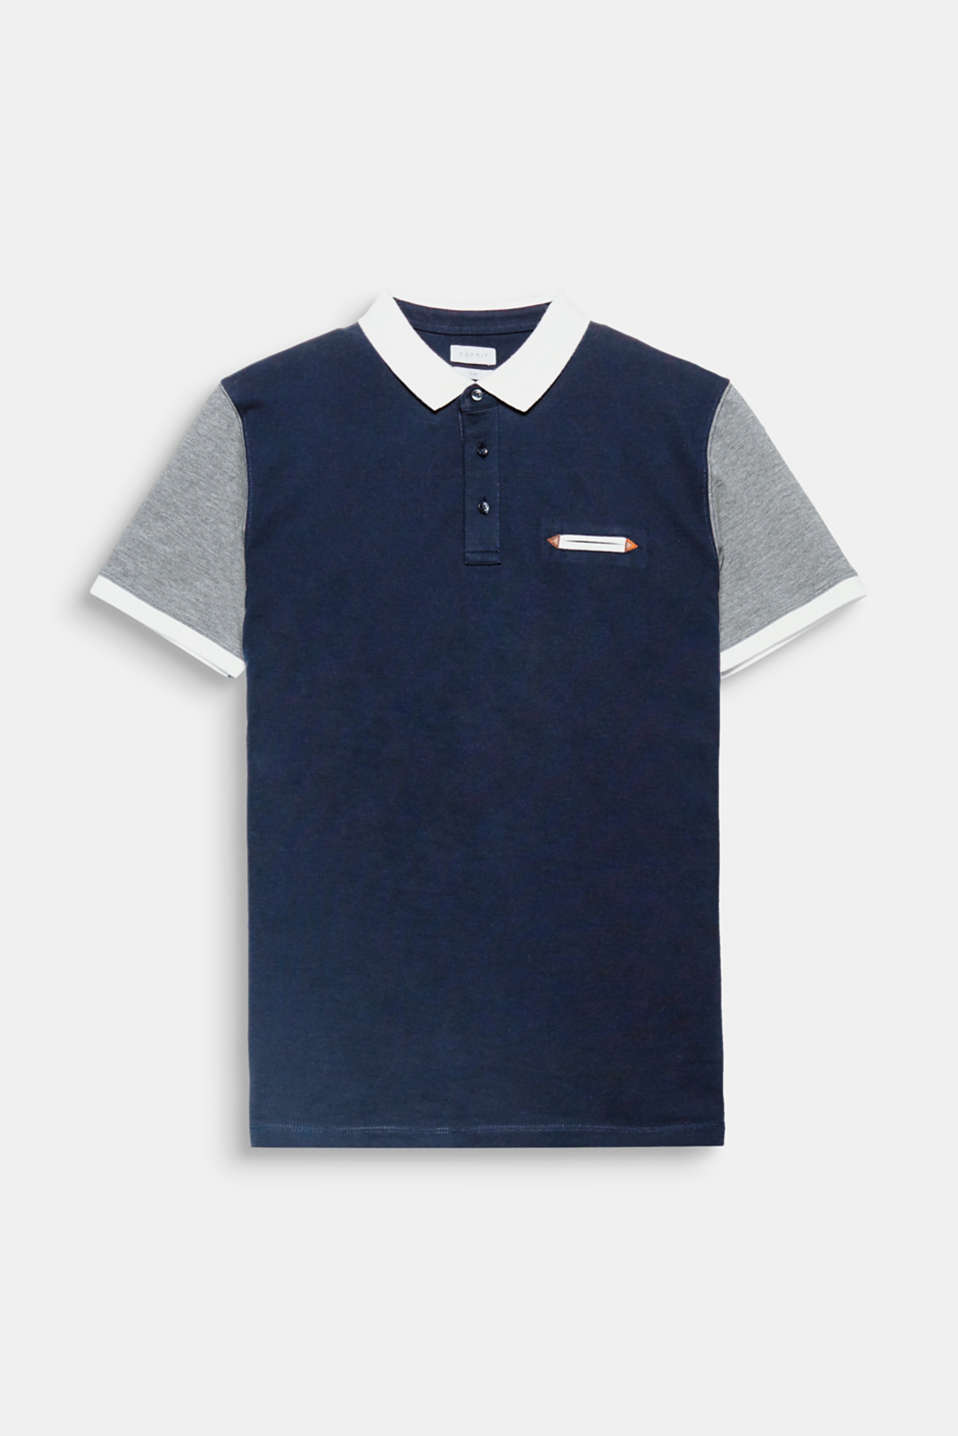 Multiple contrasting coloured sections give this piqué polo shirt a modern and sporty look.